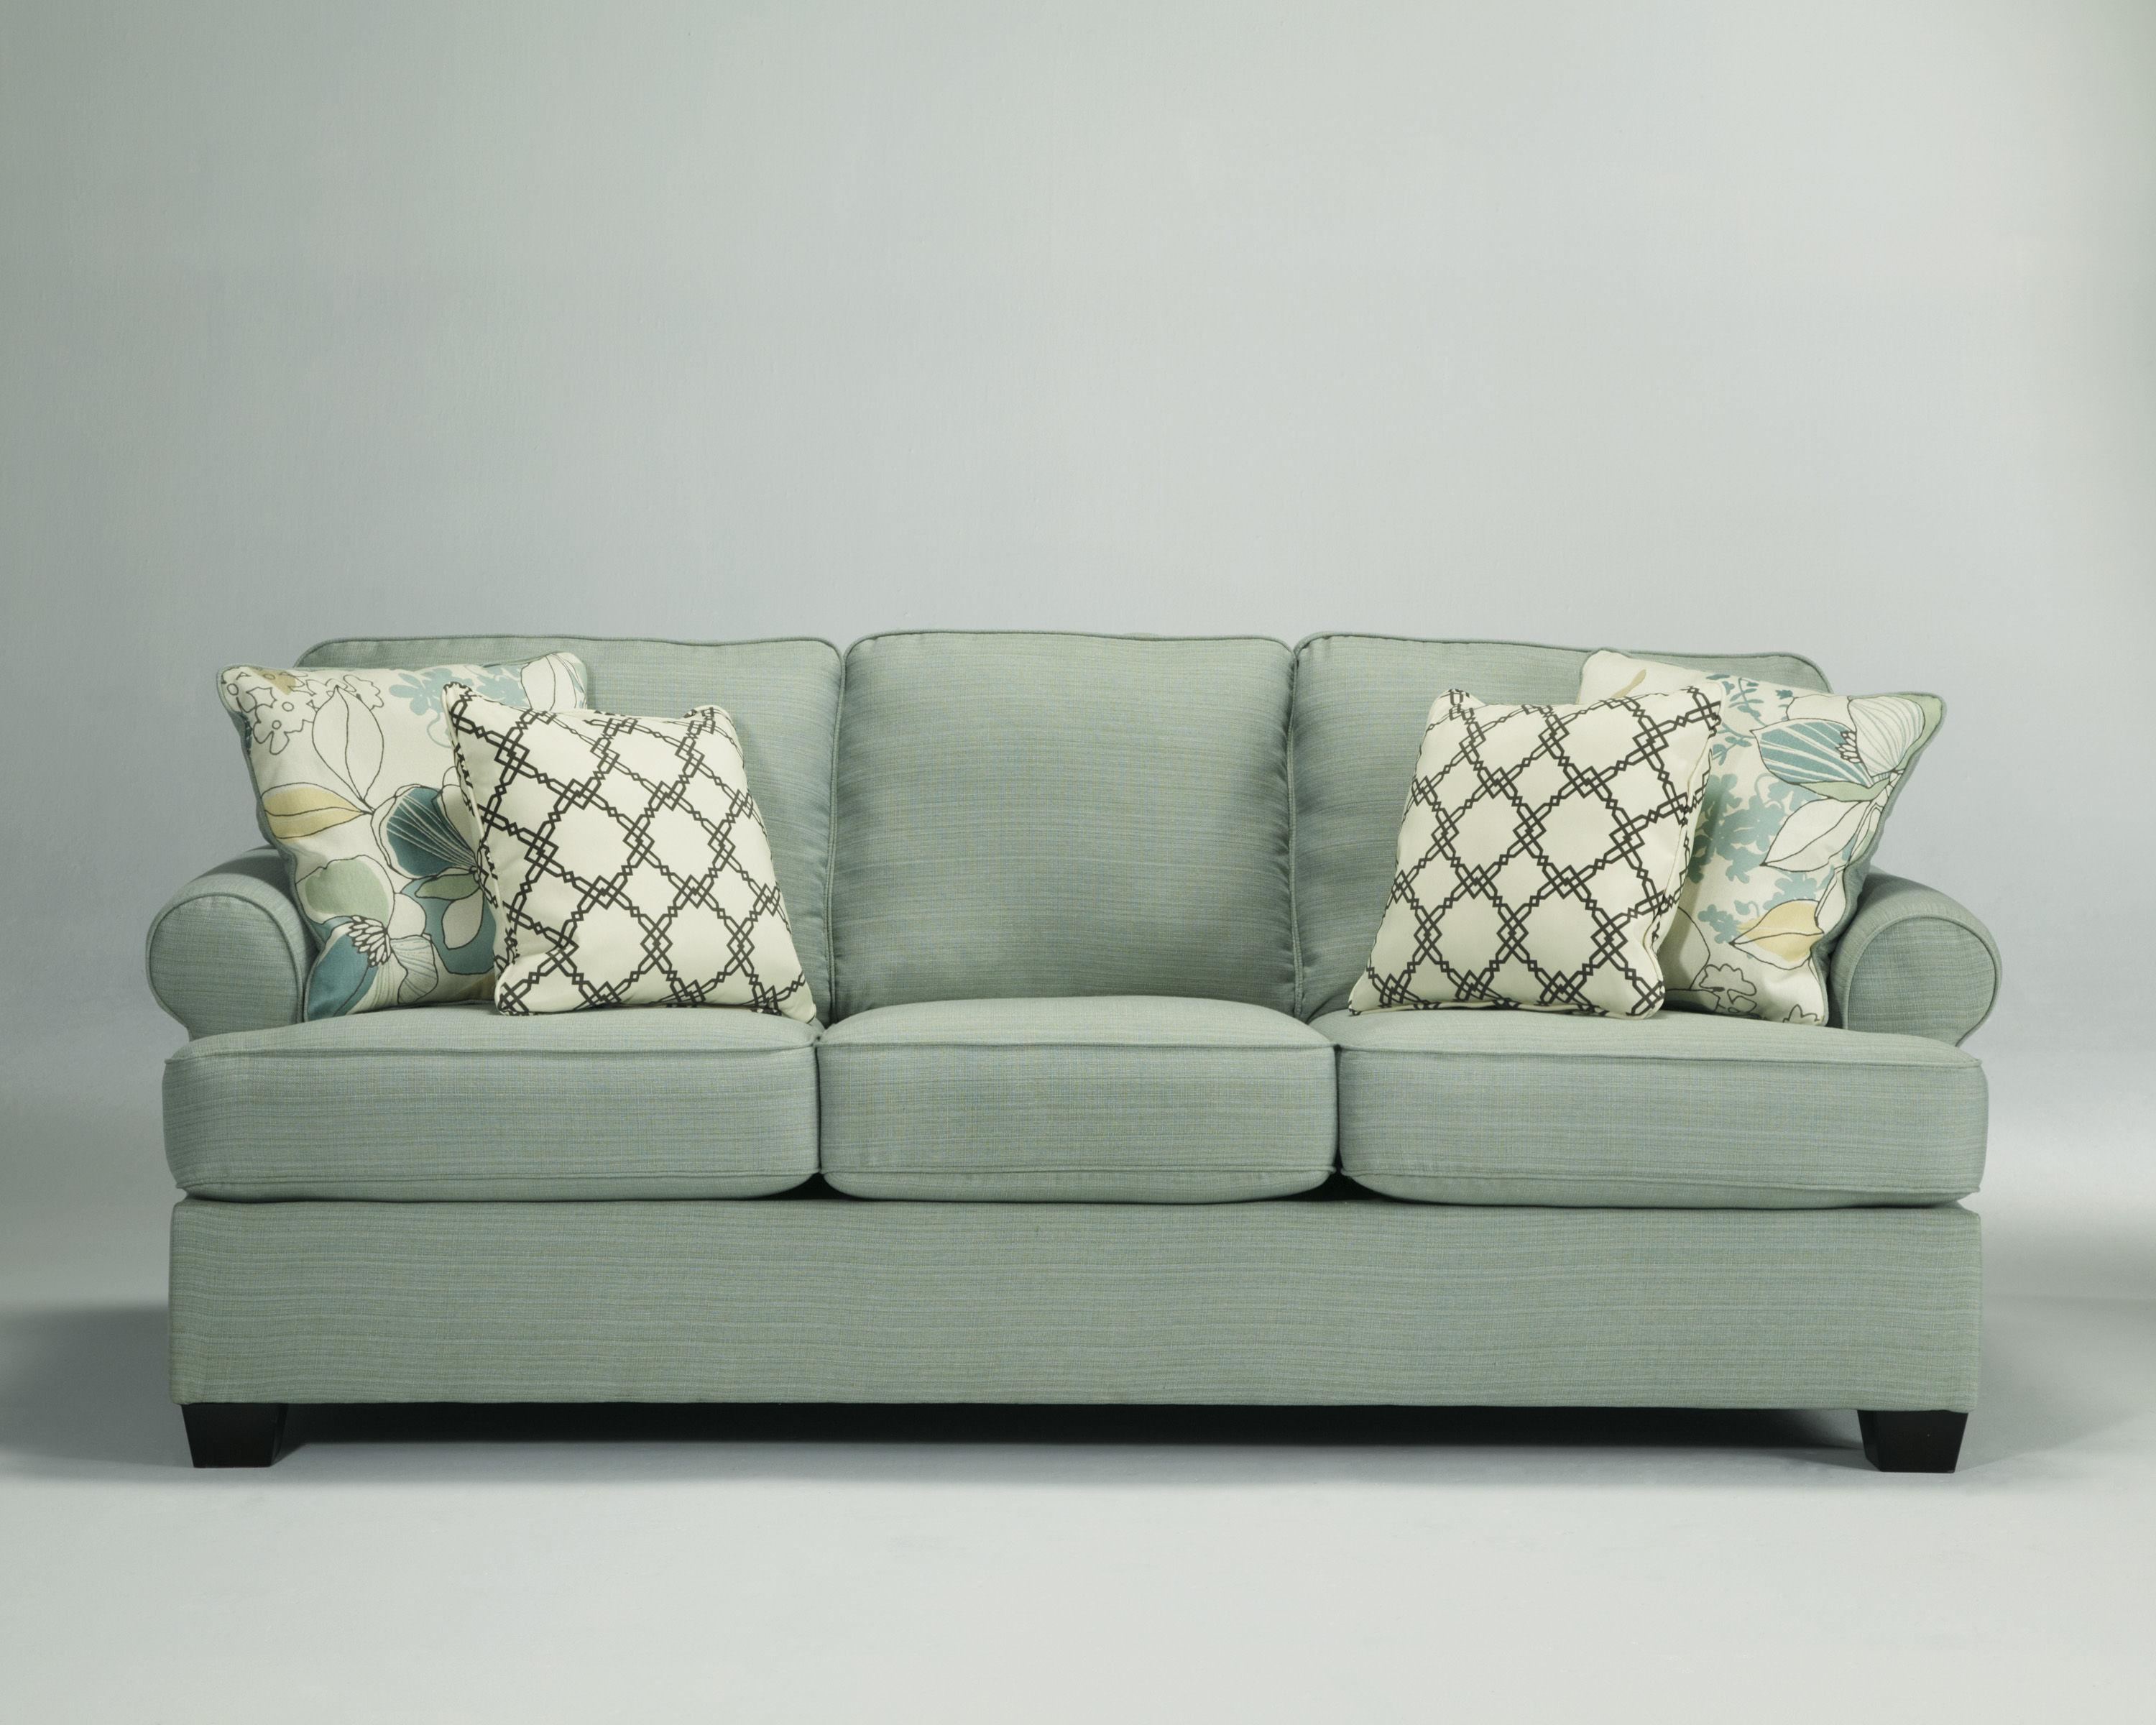 Daystar Contemporary Seafoam Fabric Sofa | Living Rooms | The Intended For Seafoam Green Sofas (Image 7 of 20)